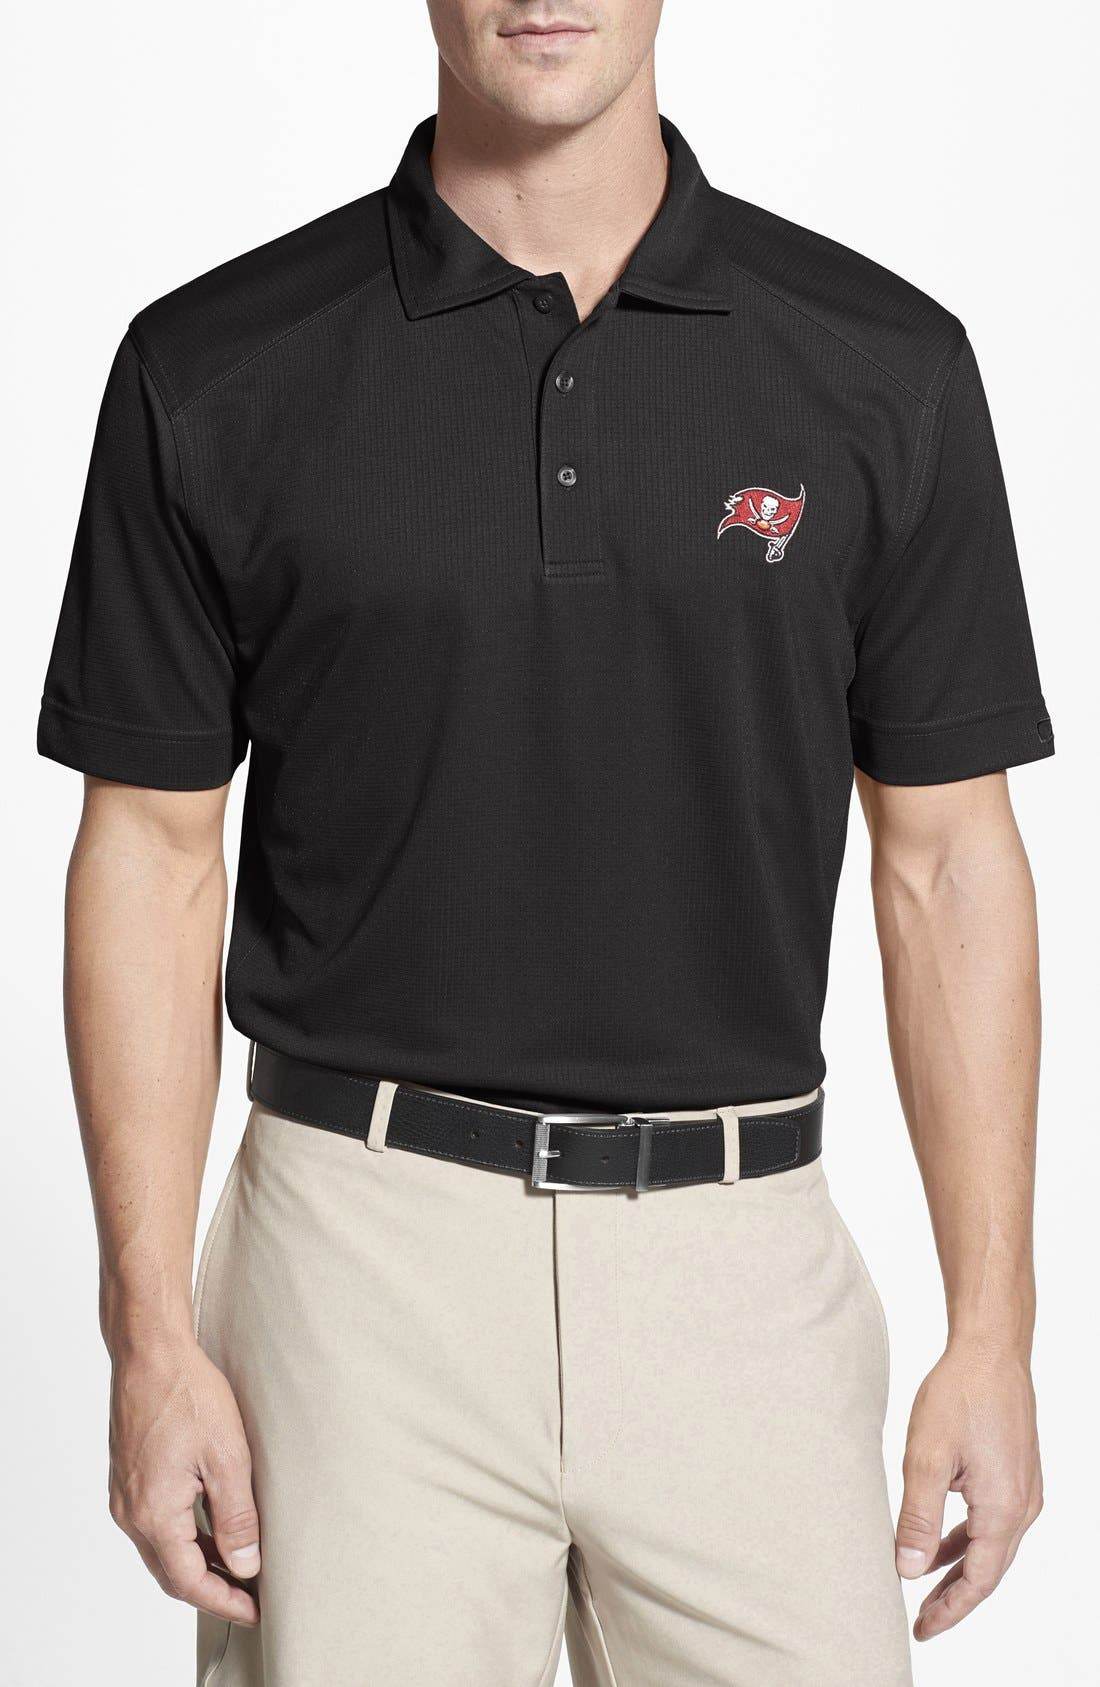 Cutter & Buck Tampa Bay Buccaneers - Genre DryTec Moisture Wicking Polo